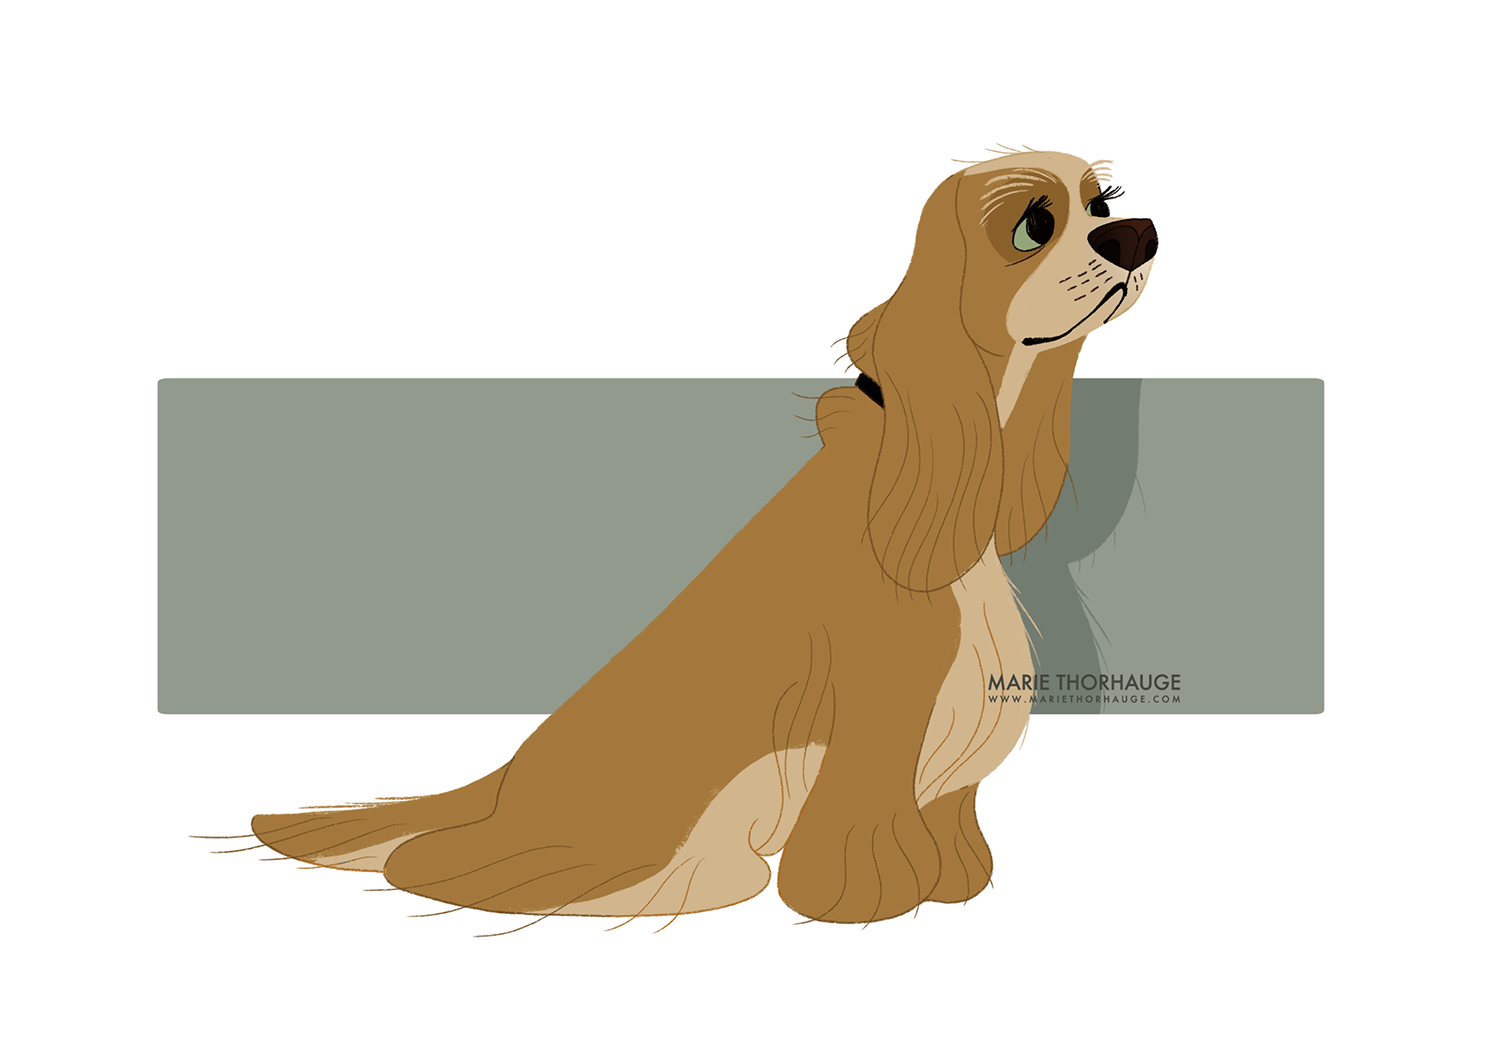 2015_Marie-Thorhauge_Dog_Cocker.png